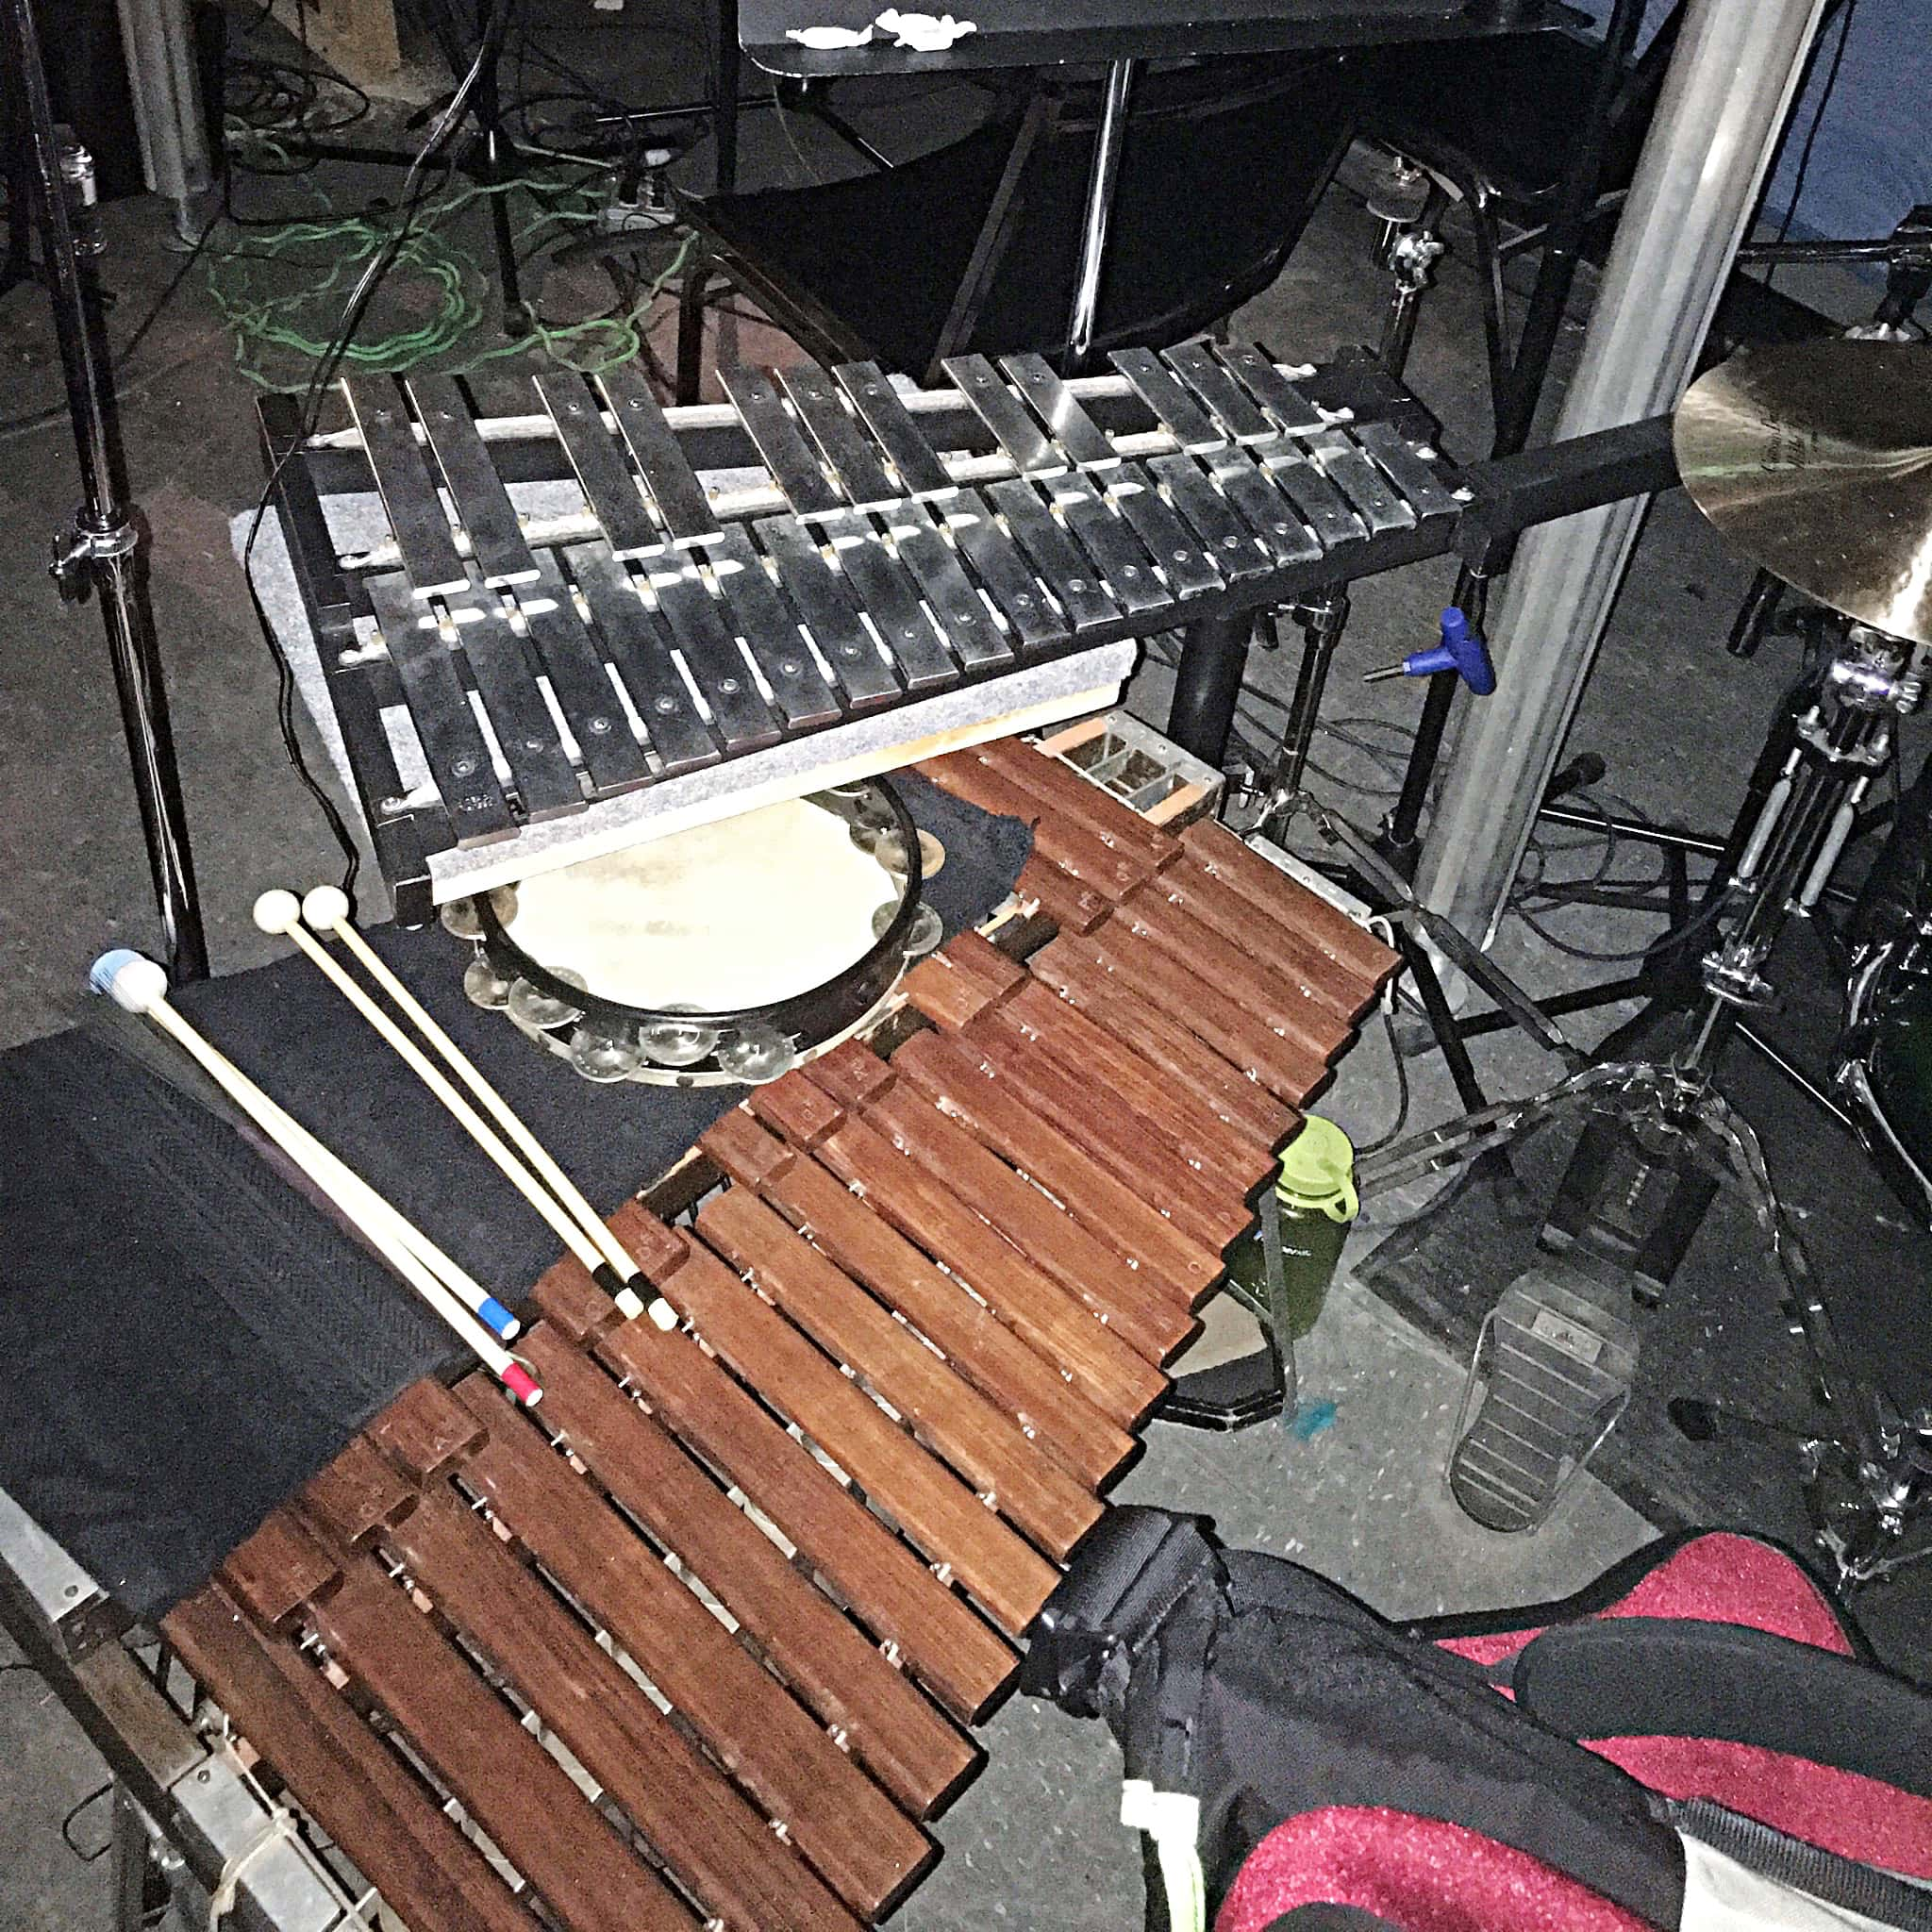 Chris Roberts' setup for Fiddler On The Roof at the Plymouth State University in Plymouth, New Hampshire.